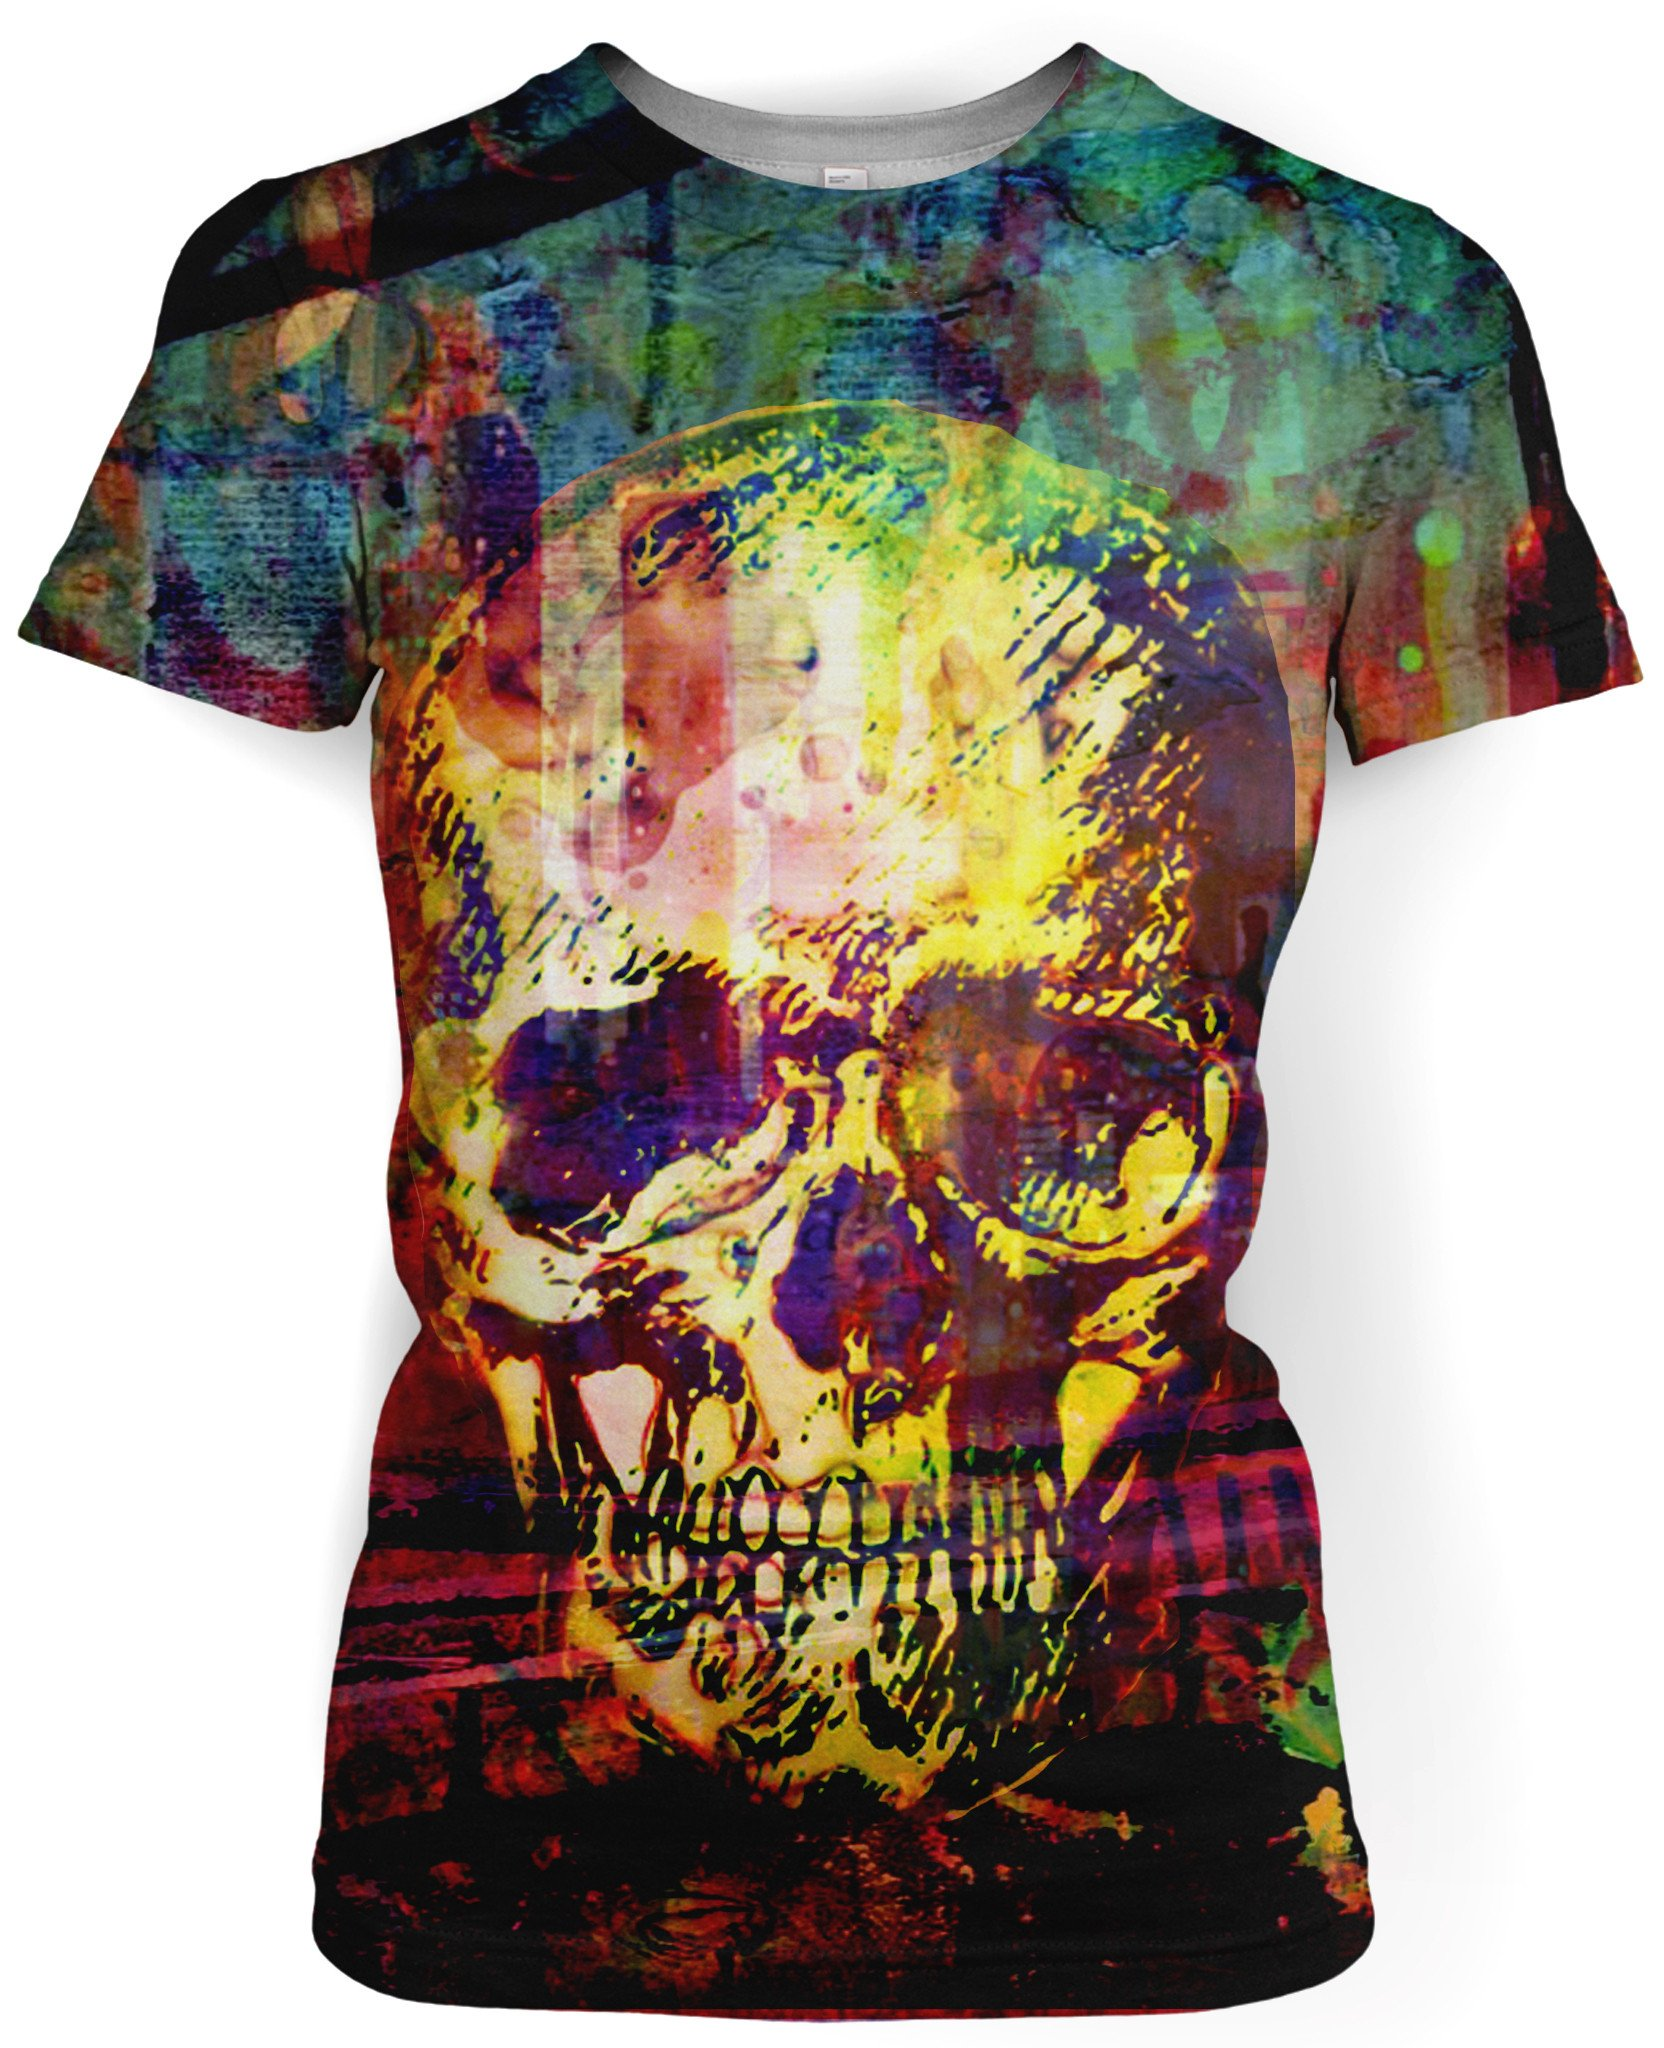 Women's Graffiti Skull T-Shirt